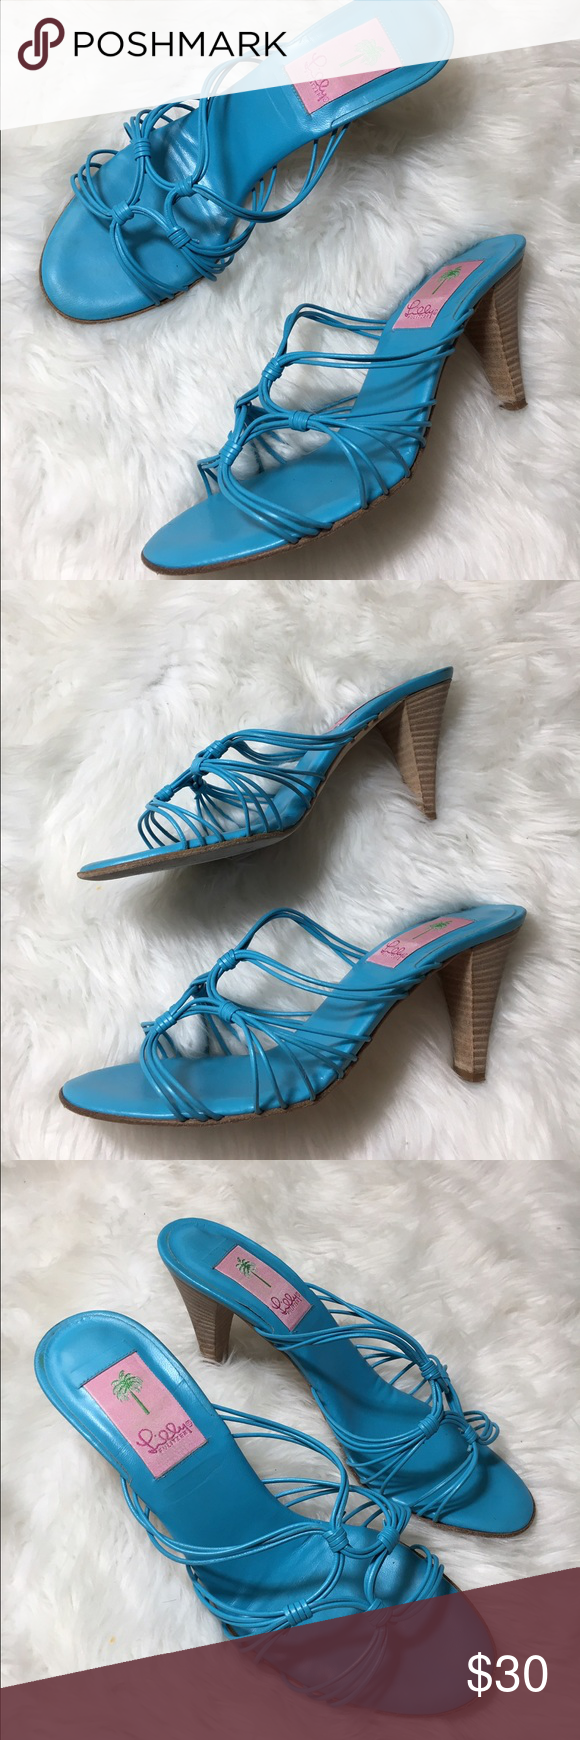 """Iilly Pulitzer Nicky blue Strappy heels women 8.5 Lilly Pulitzer Nicky light blue, strappy sandal with a 3.5"""" heel. Women's size 8.5 medium width, in great condition with the only wear on bottom of the sole. Lilly Pulitzer Shoes Heels"""